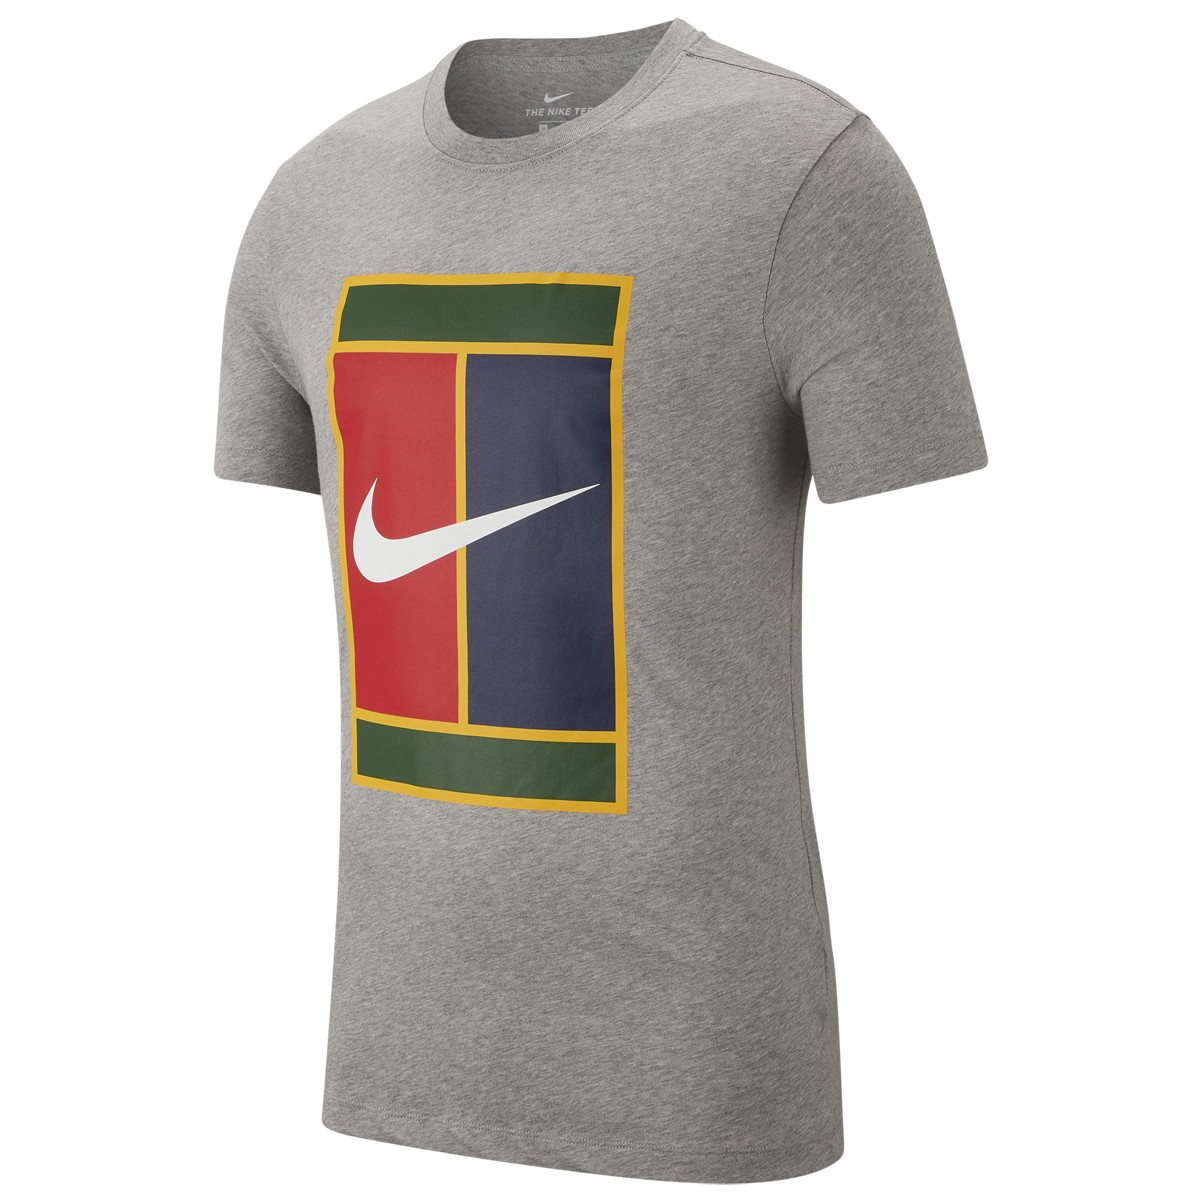 size 40 casual shoes exclusive shoes T-SHIRT NIKE COURT HERITAGE LOGO - NIKE - Homme - Vêtements ...